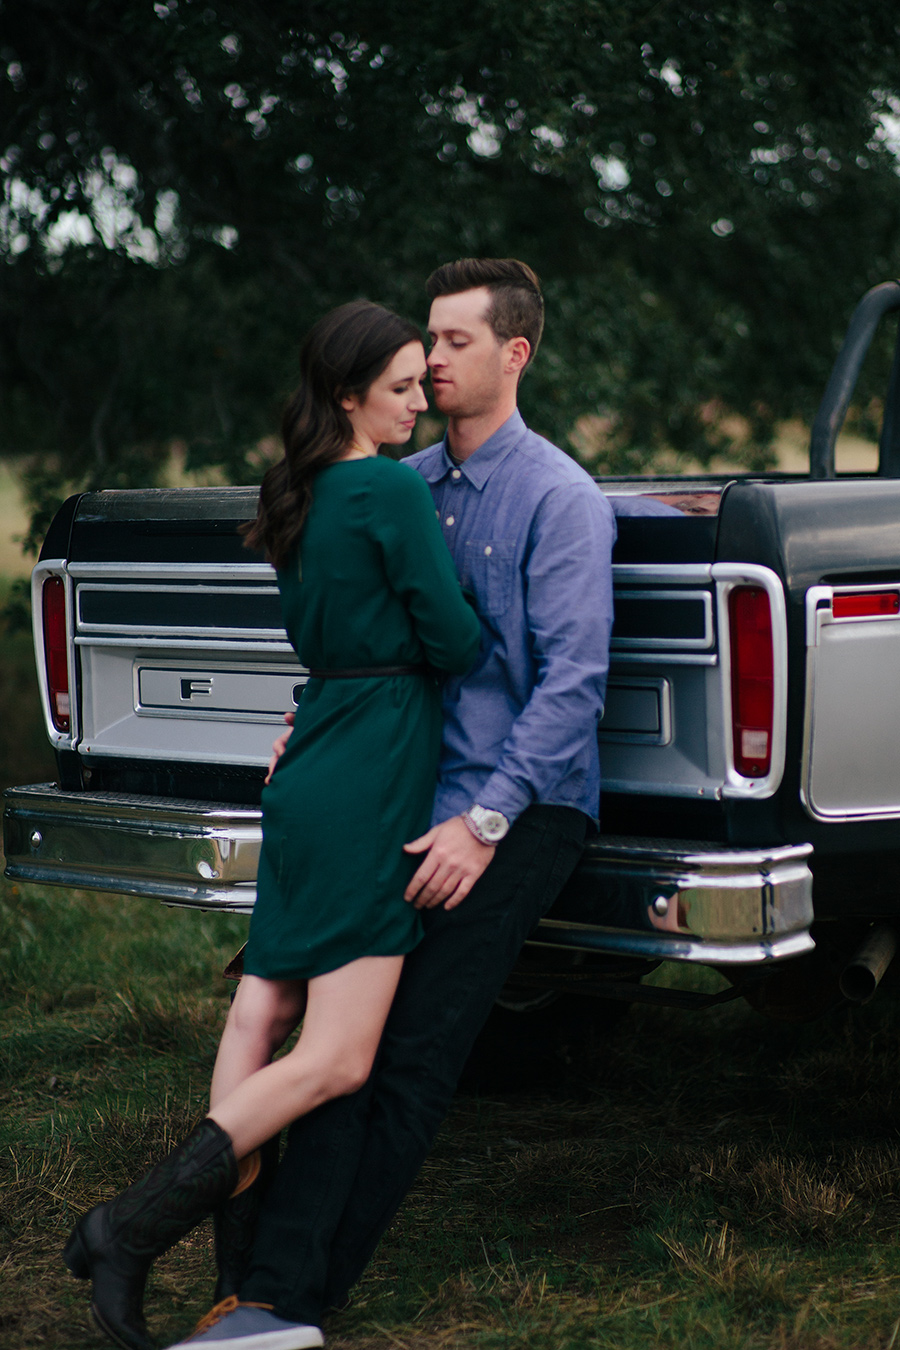 engagement_with_truck_austin